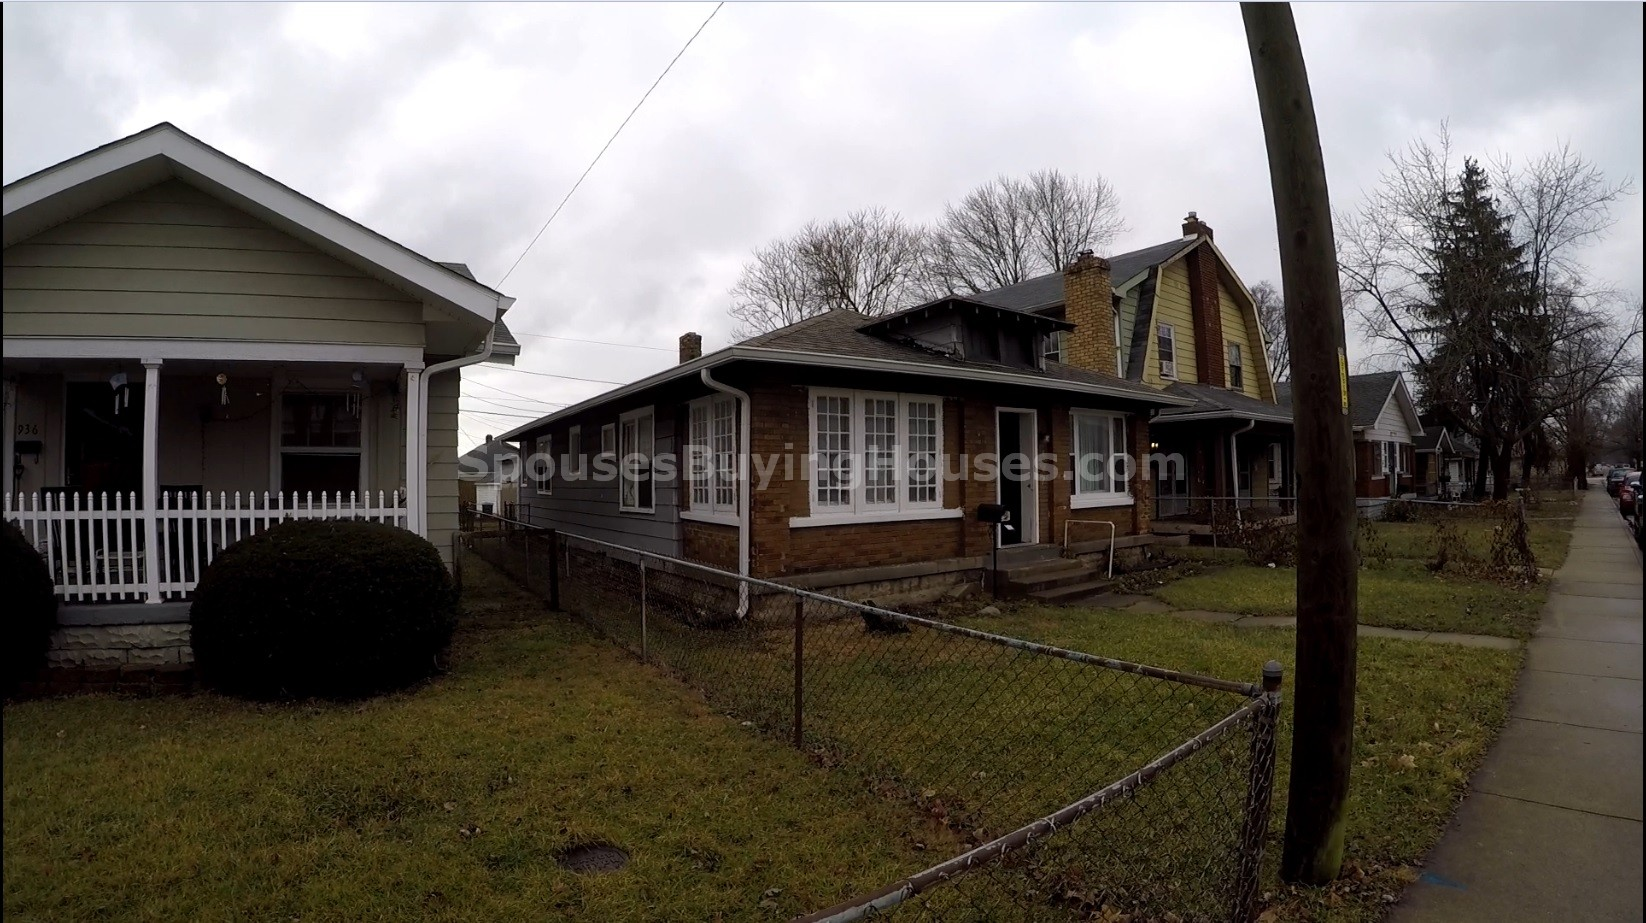 Sell Your House Fast Indianapolis 940 N Drexel Ave Indianapolis In 46201 Spouses Buying Houses